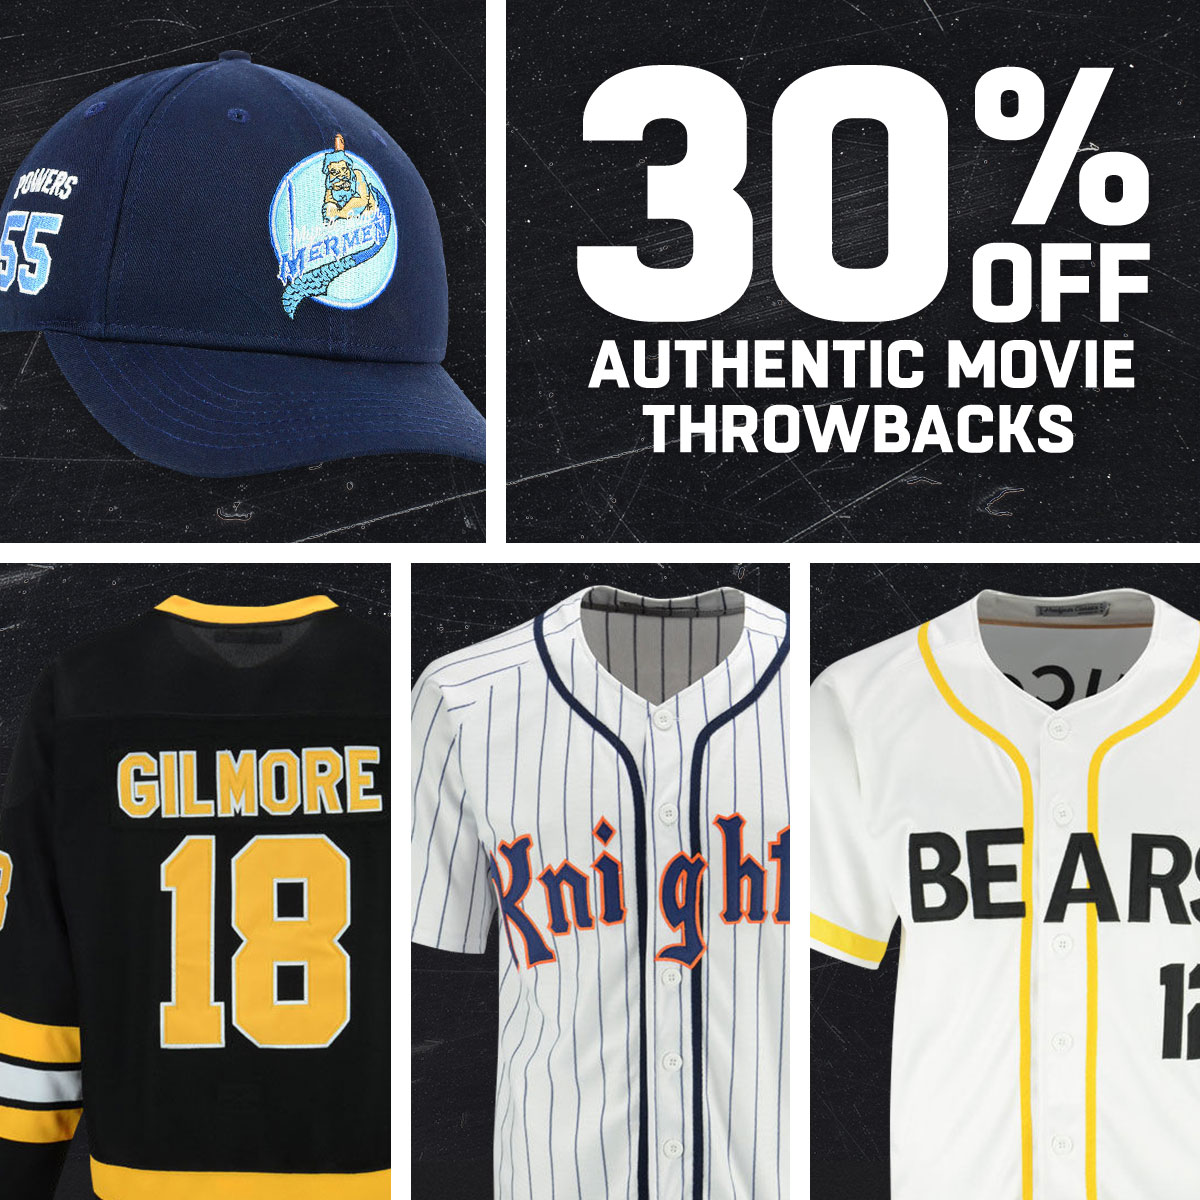 b6abf7ce8 LIDS - 30% off Happy Gilmore's jersey & other movie classics